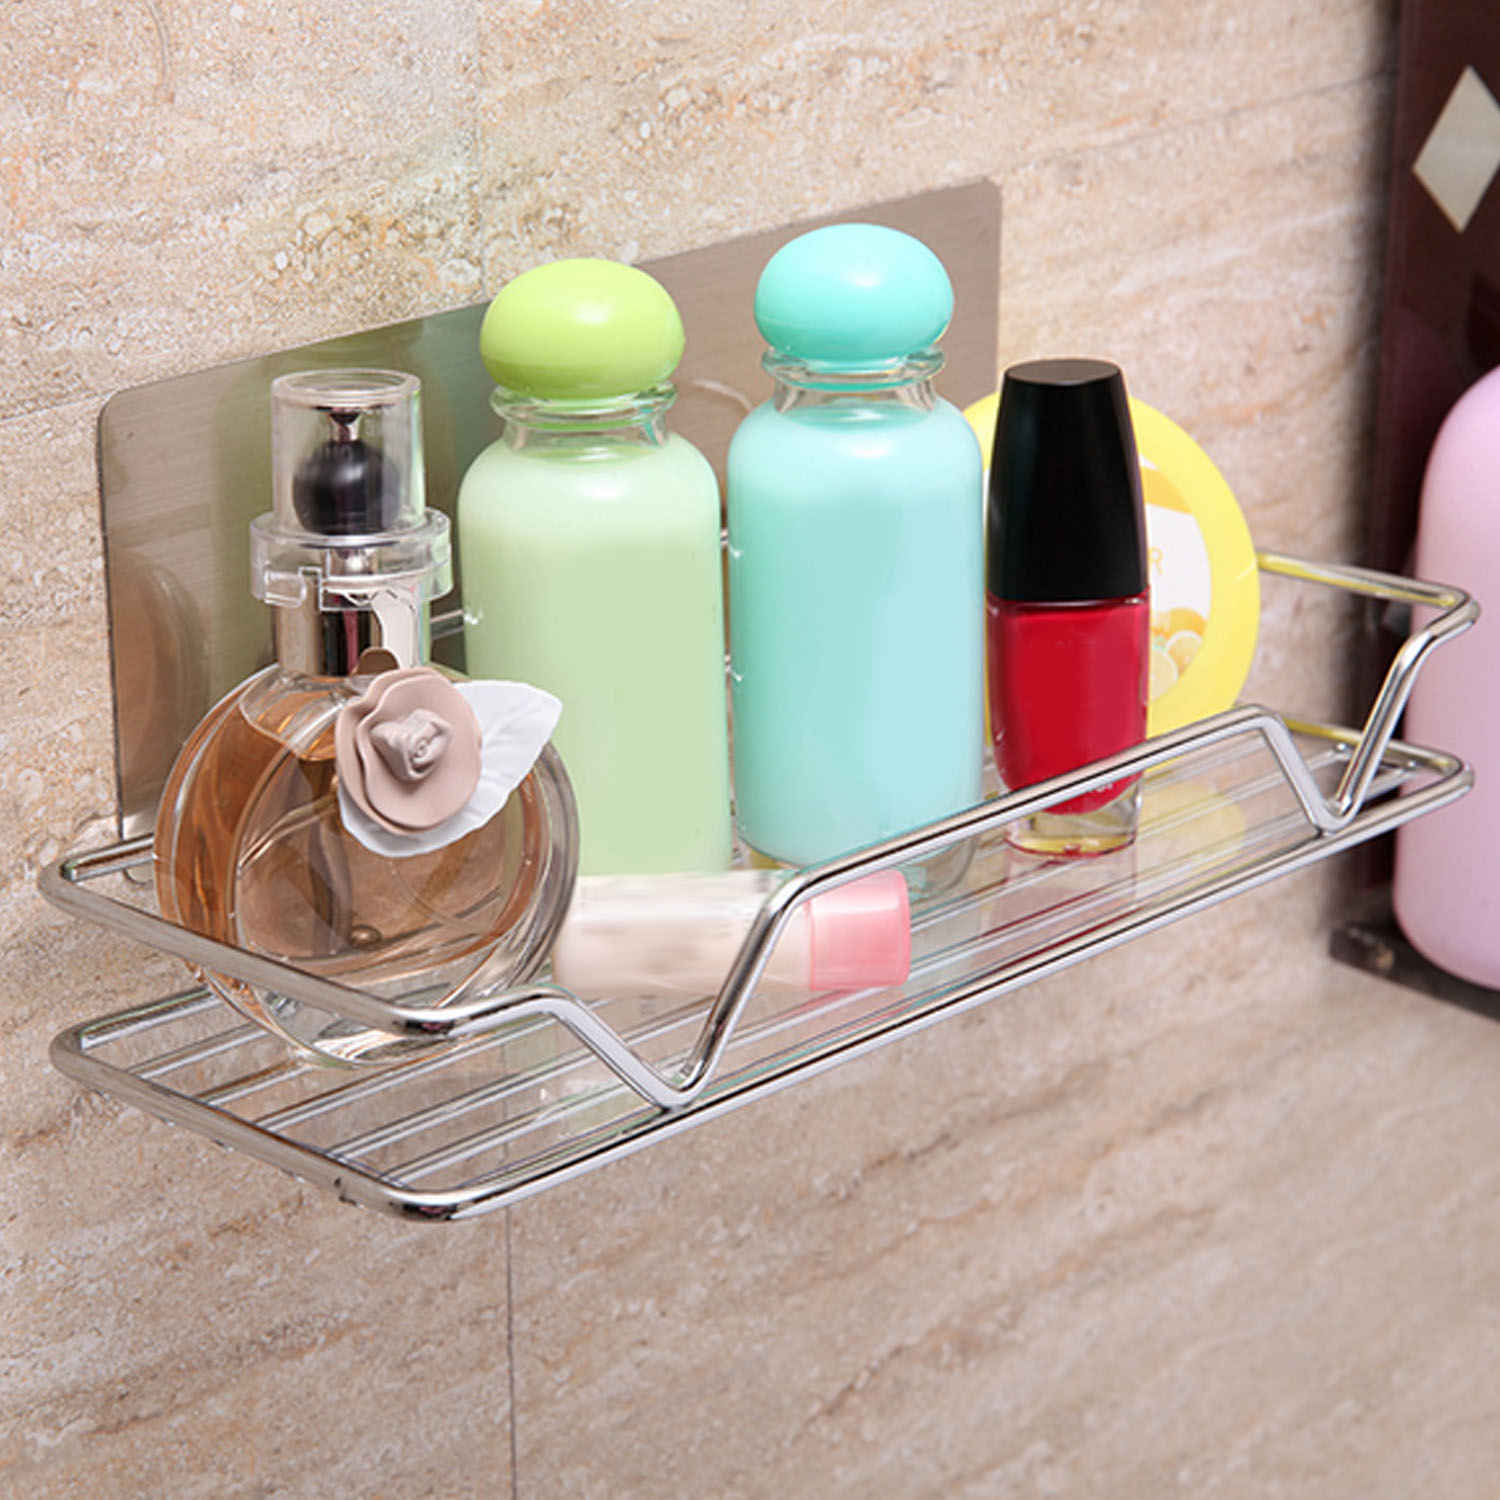 1 Pc Wall Mounted Sticky Shampoo Holder Shower Basket Strong Suction Stainless Steel Soap Cosmetic Bathroom Shelves Organizer